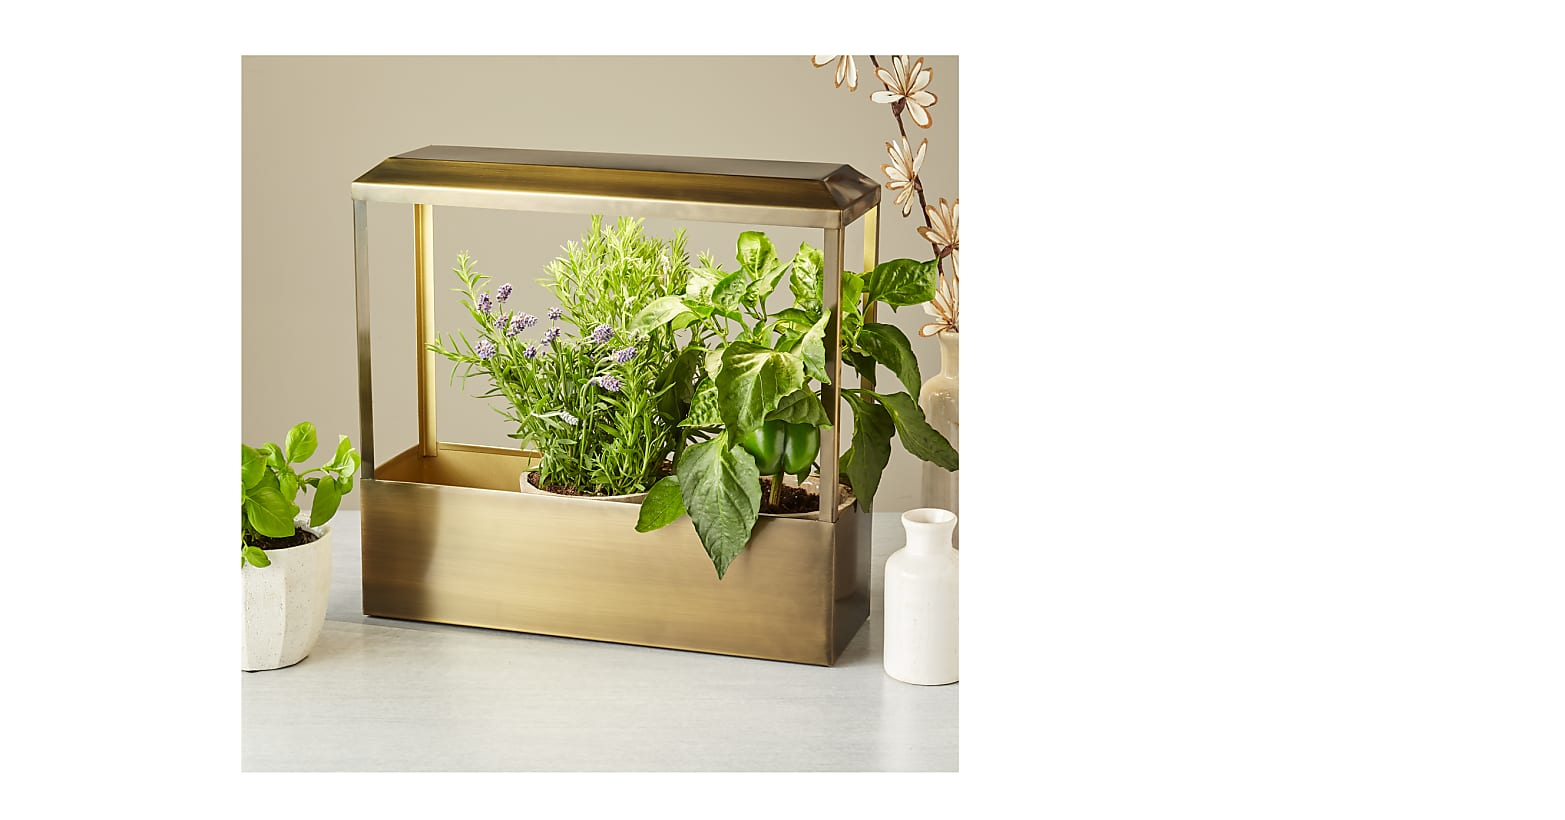 Brass Smart Growhouse - Image 1 Of 2